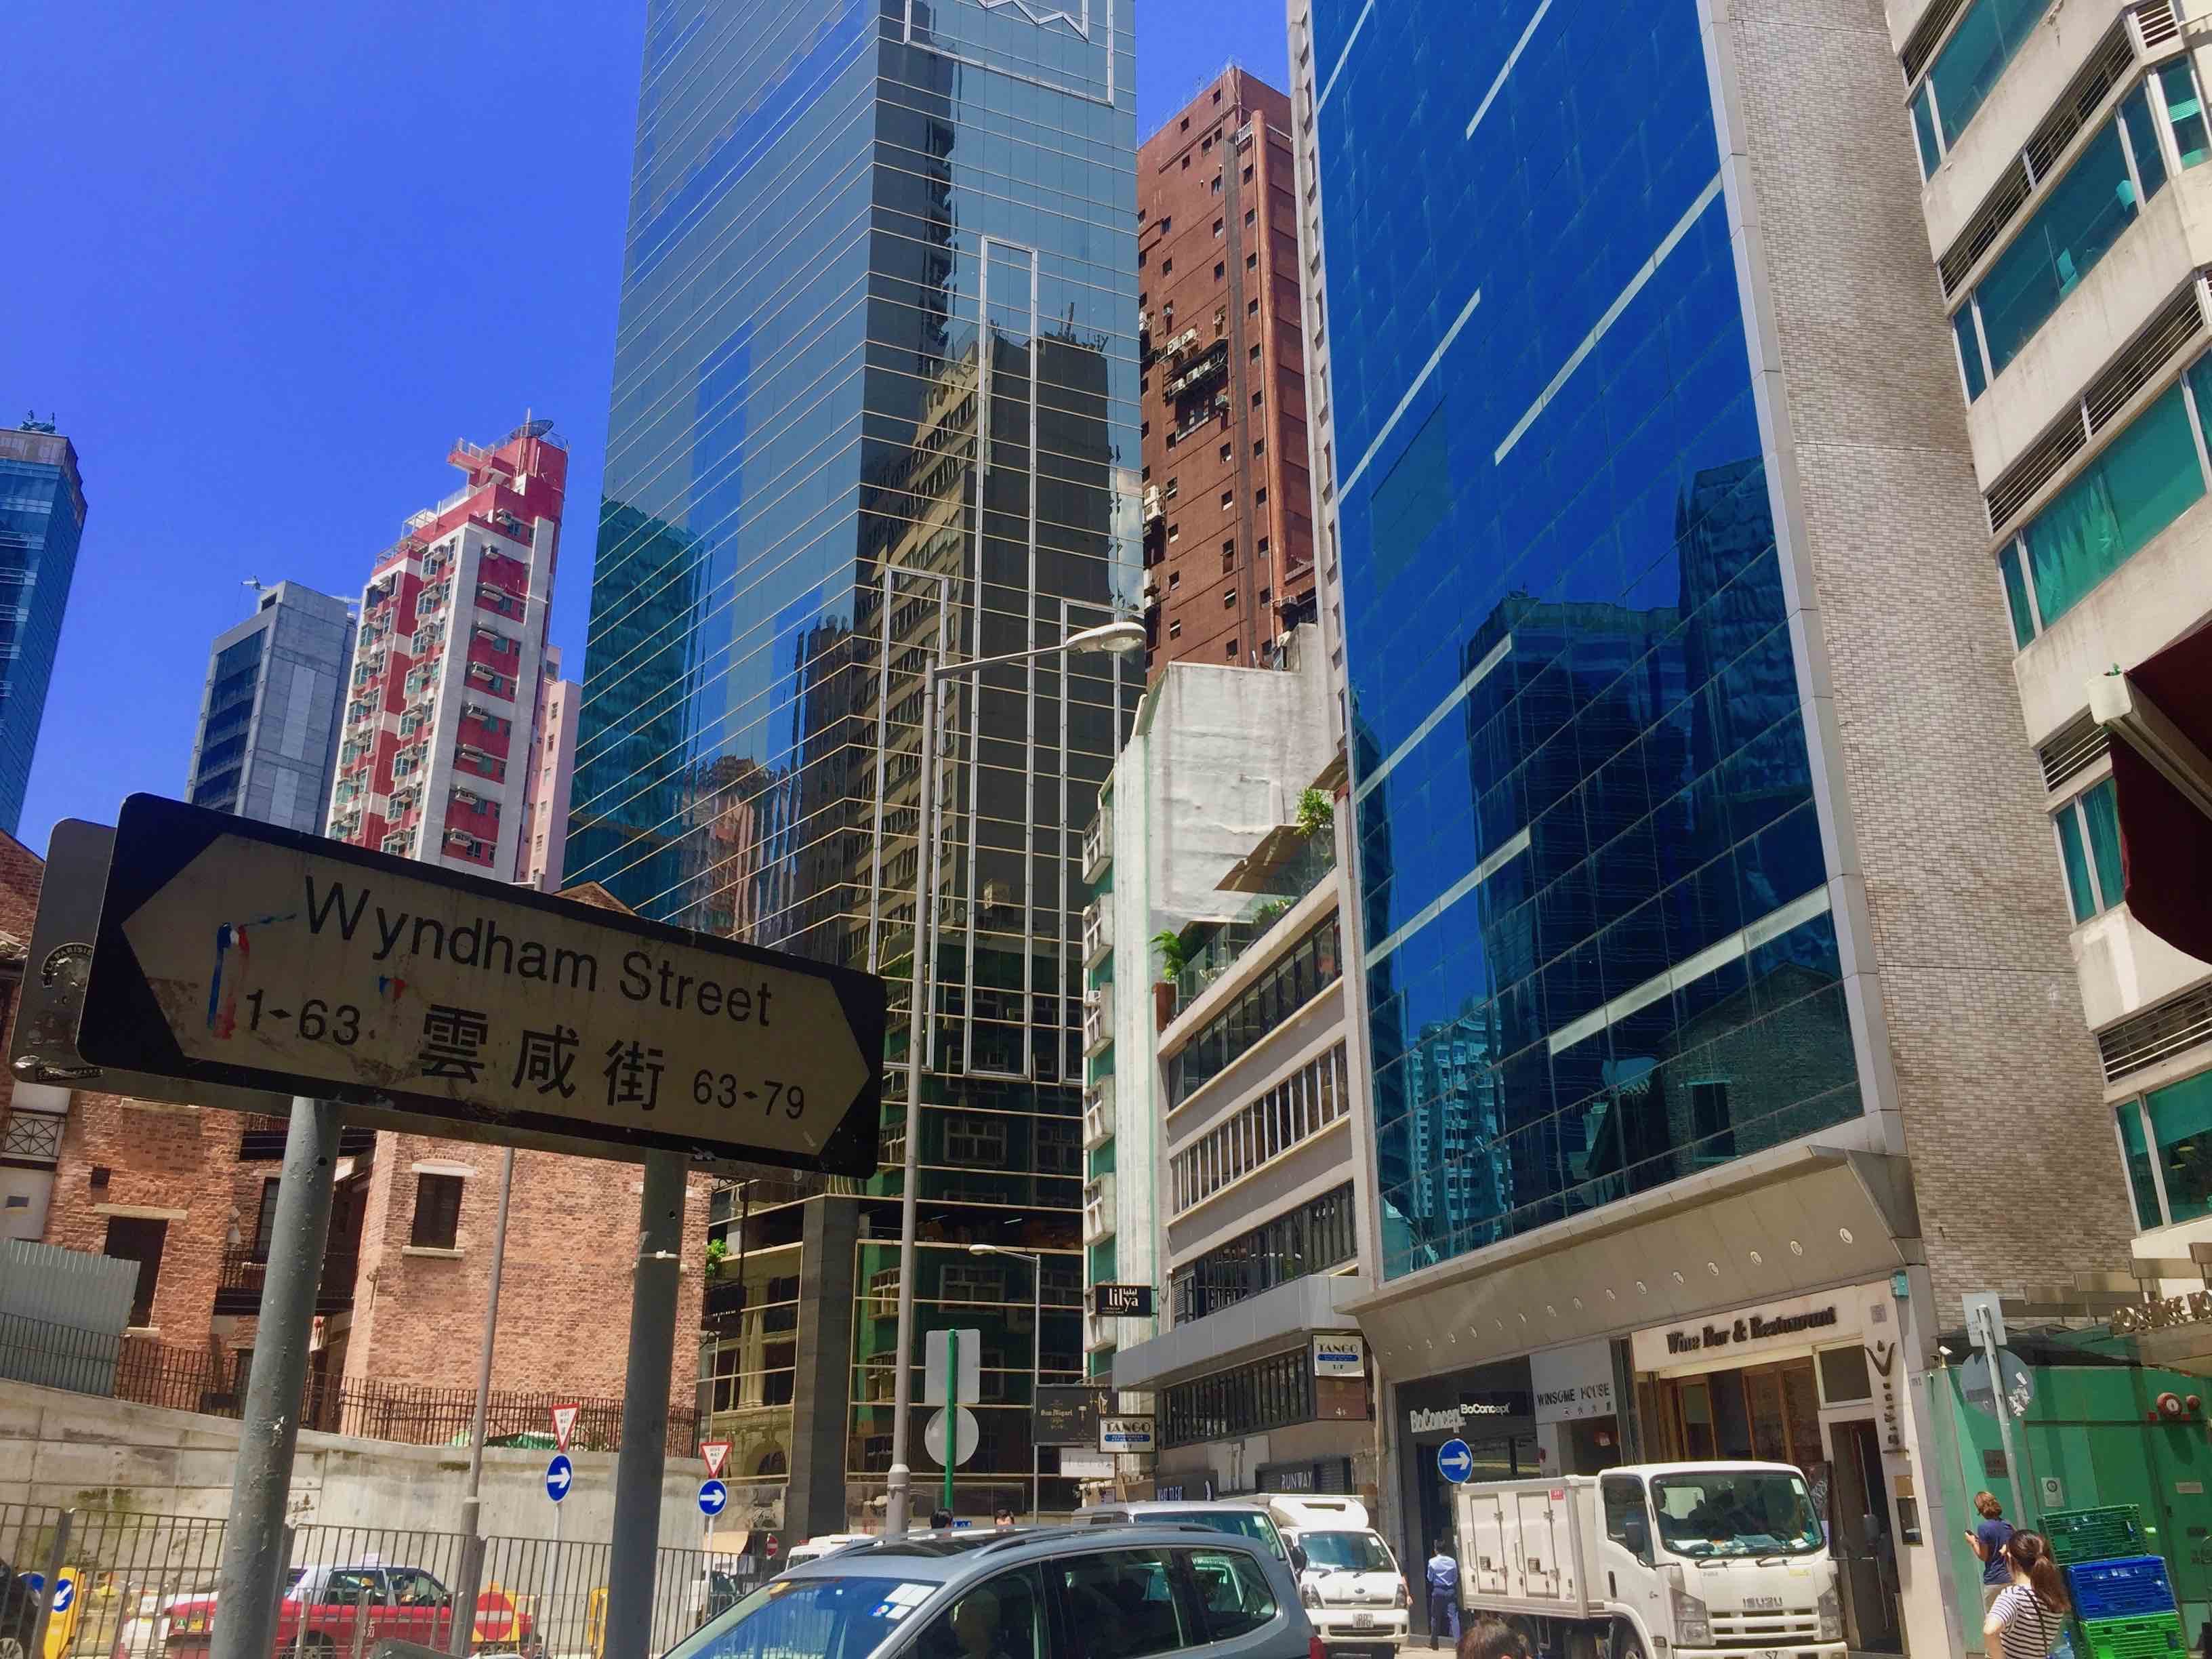 HK Central fitted restaurant with licence for lease